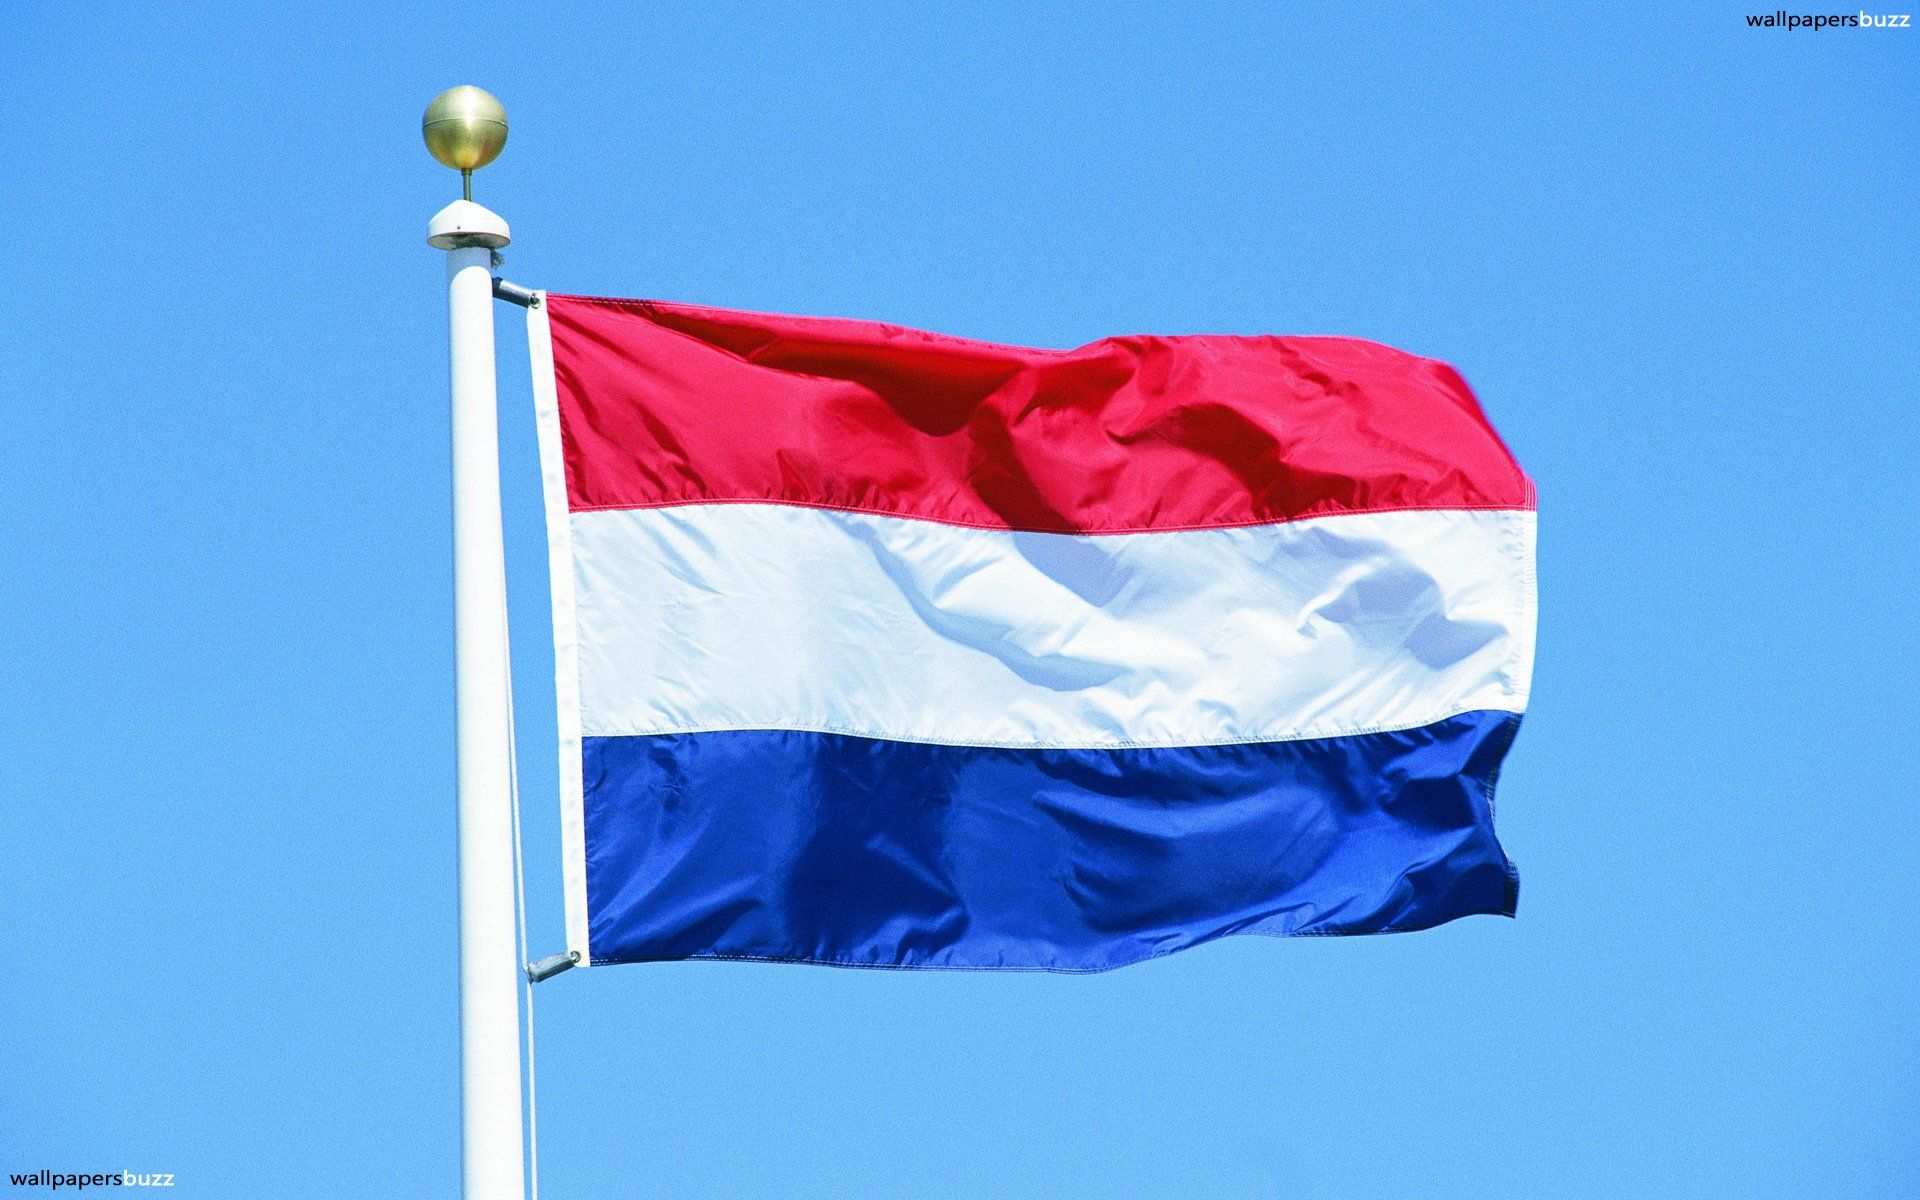 1920x1200 The traditional flag of Kingdom of Netherlands HD Wallpaper